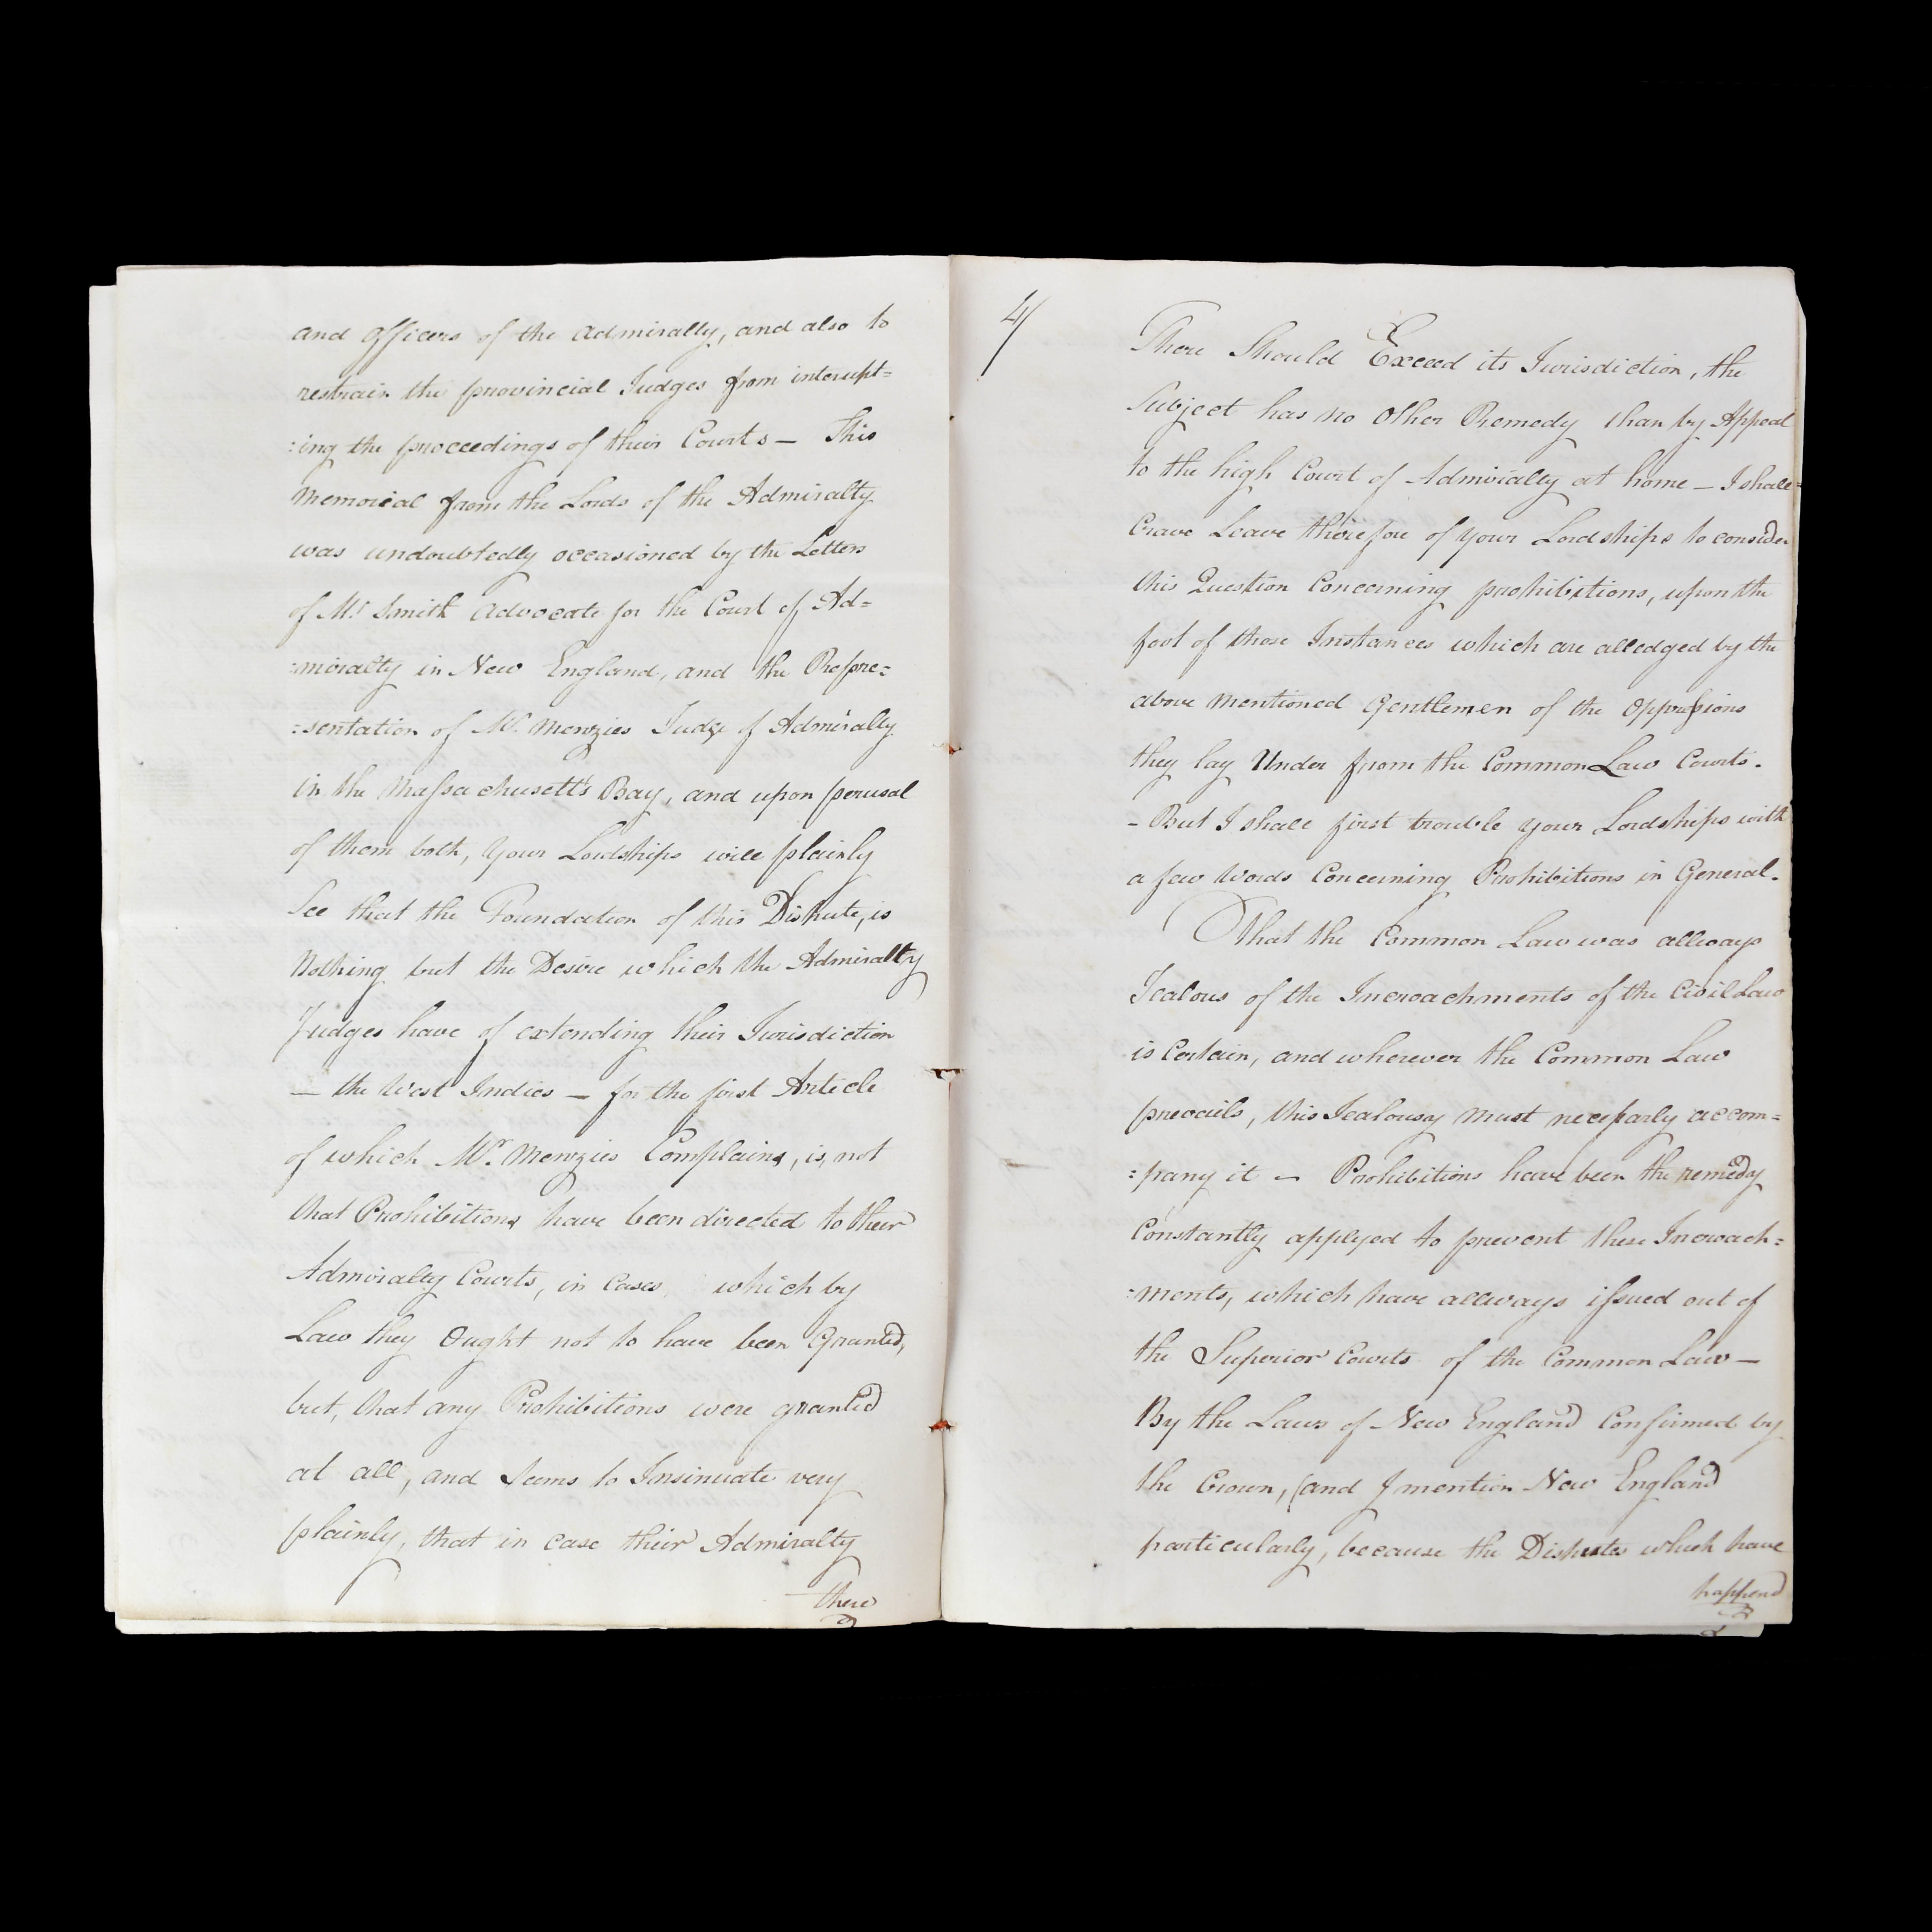 An Important Document Addressed To Lords of the Admiralty and Governors of the American Plantations  Concerning The Confiscation of Pirate Goods and Establishing an Act that will allow Pirates to be Tried and Punished by Courts in the Colonies and Provinces. (photo 2)